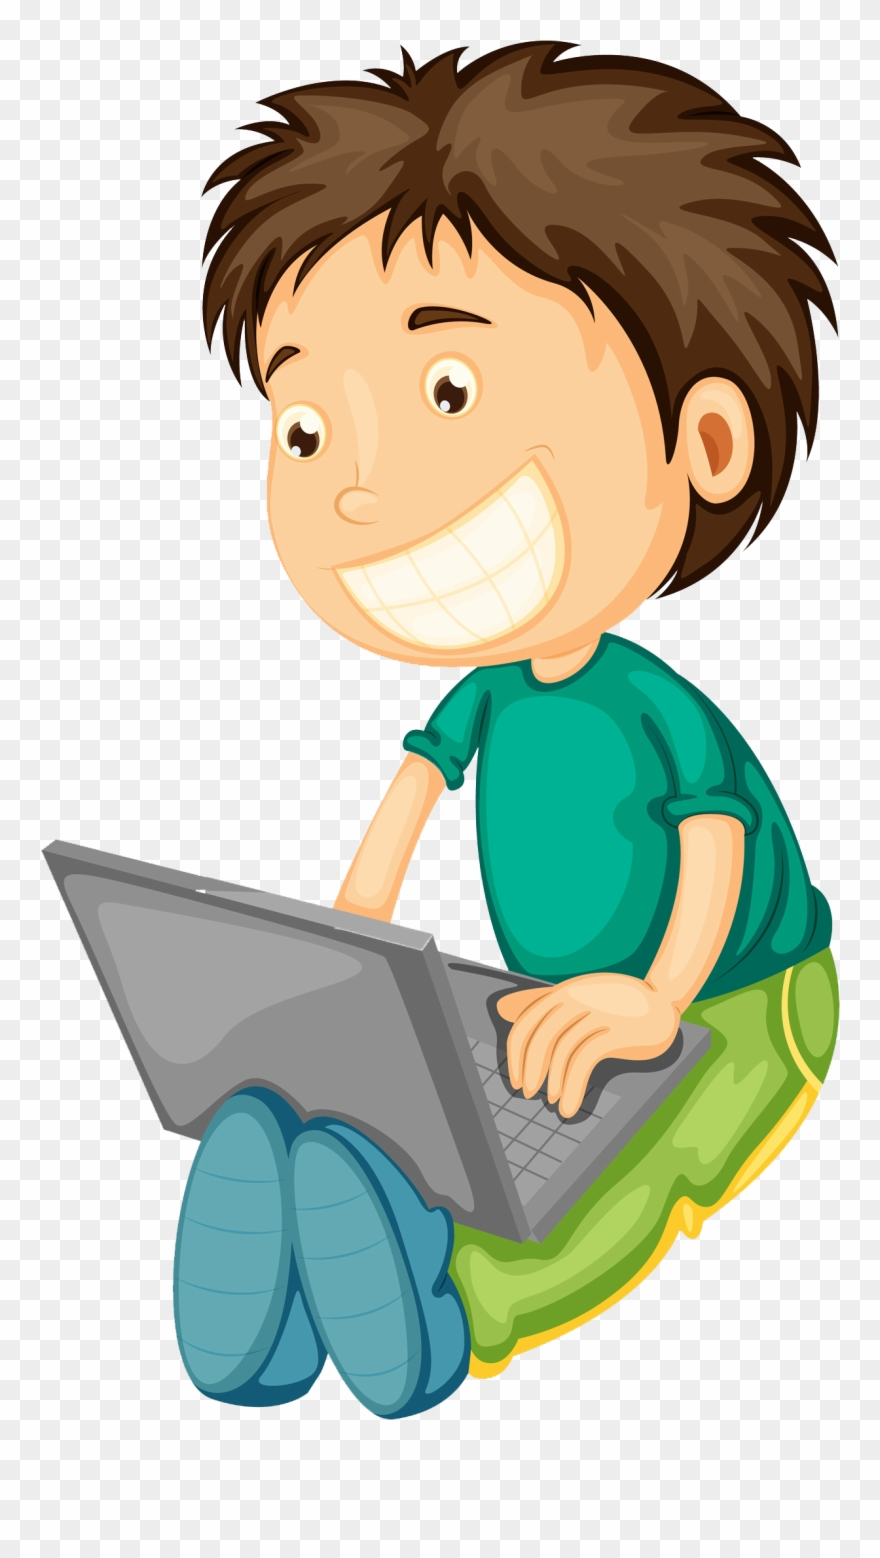 A boy using computer clipart picture royalty free stock Computer Boy Clipart - Boy And Girl On Laptop Clipart - Png Download ... picture royalty free stock